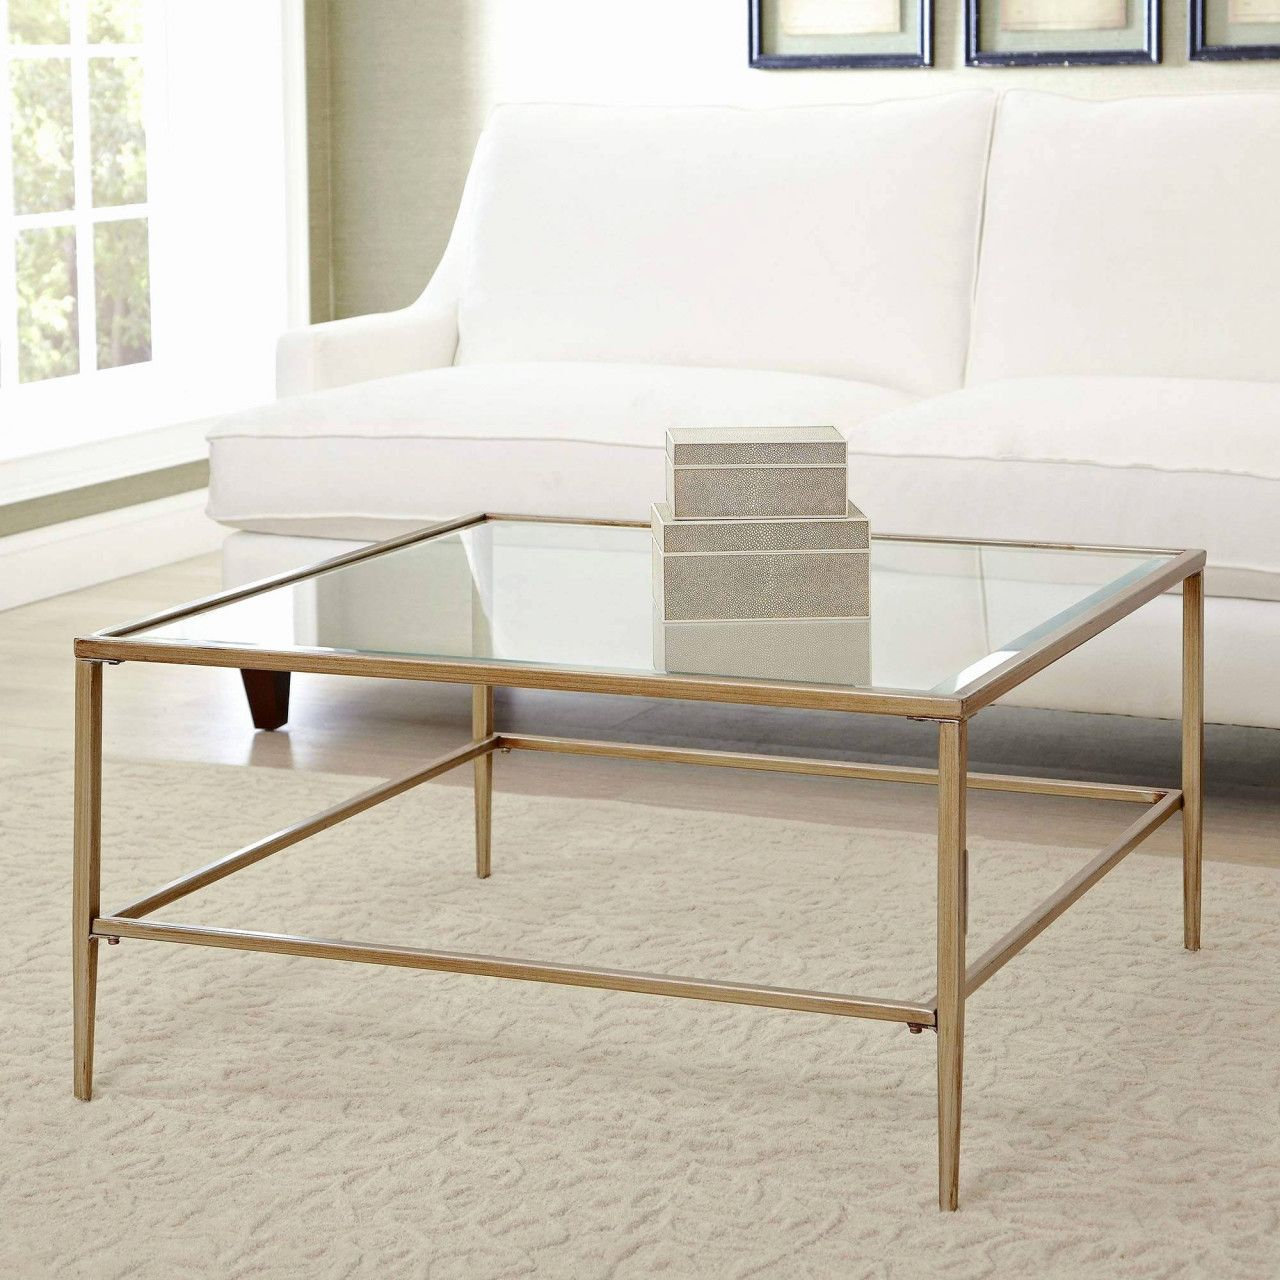 28 Lovely Wayfair Coffee Table with Storage 2019 Round